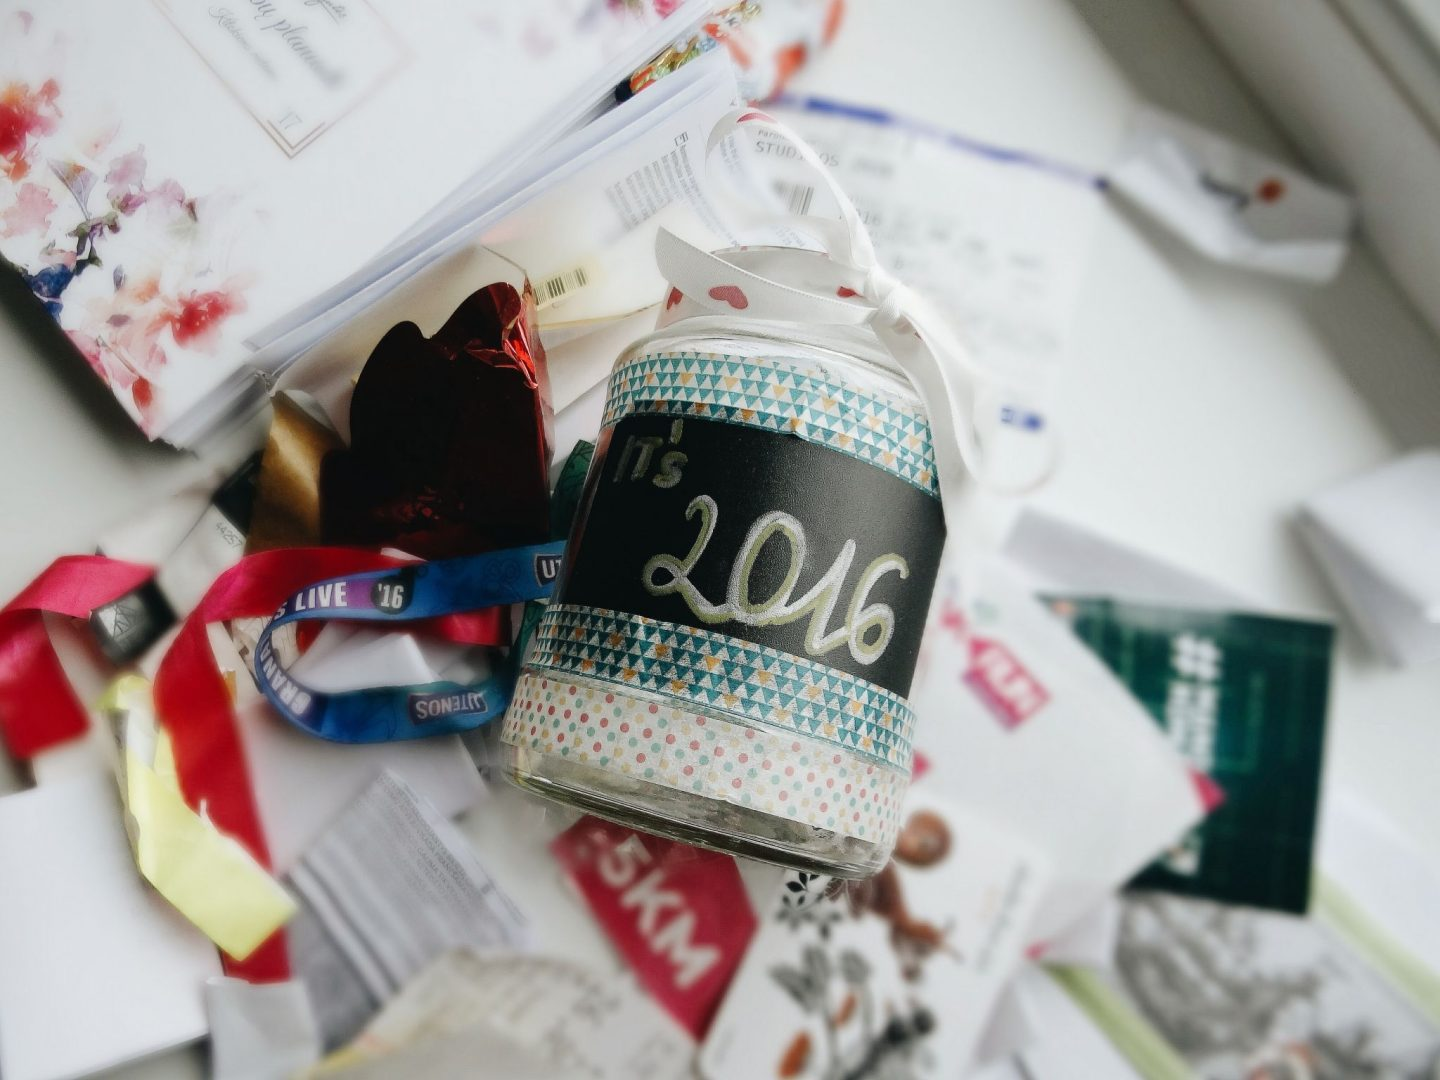 Reflection of 2016 | Best of 2016 Jar by The Nerdy Me